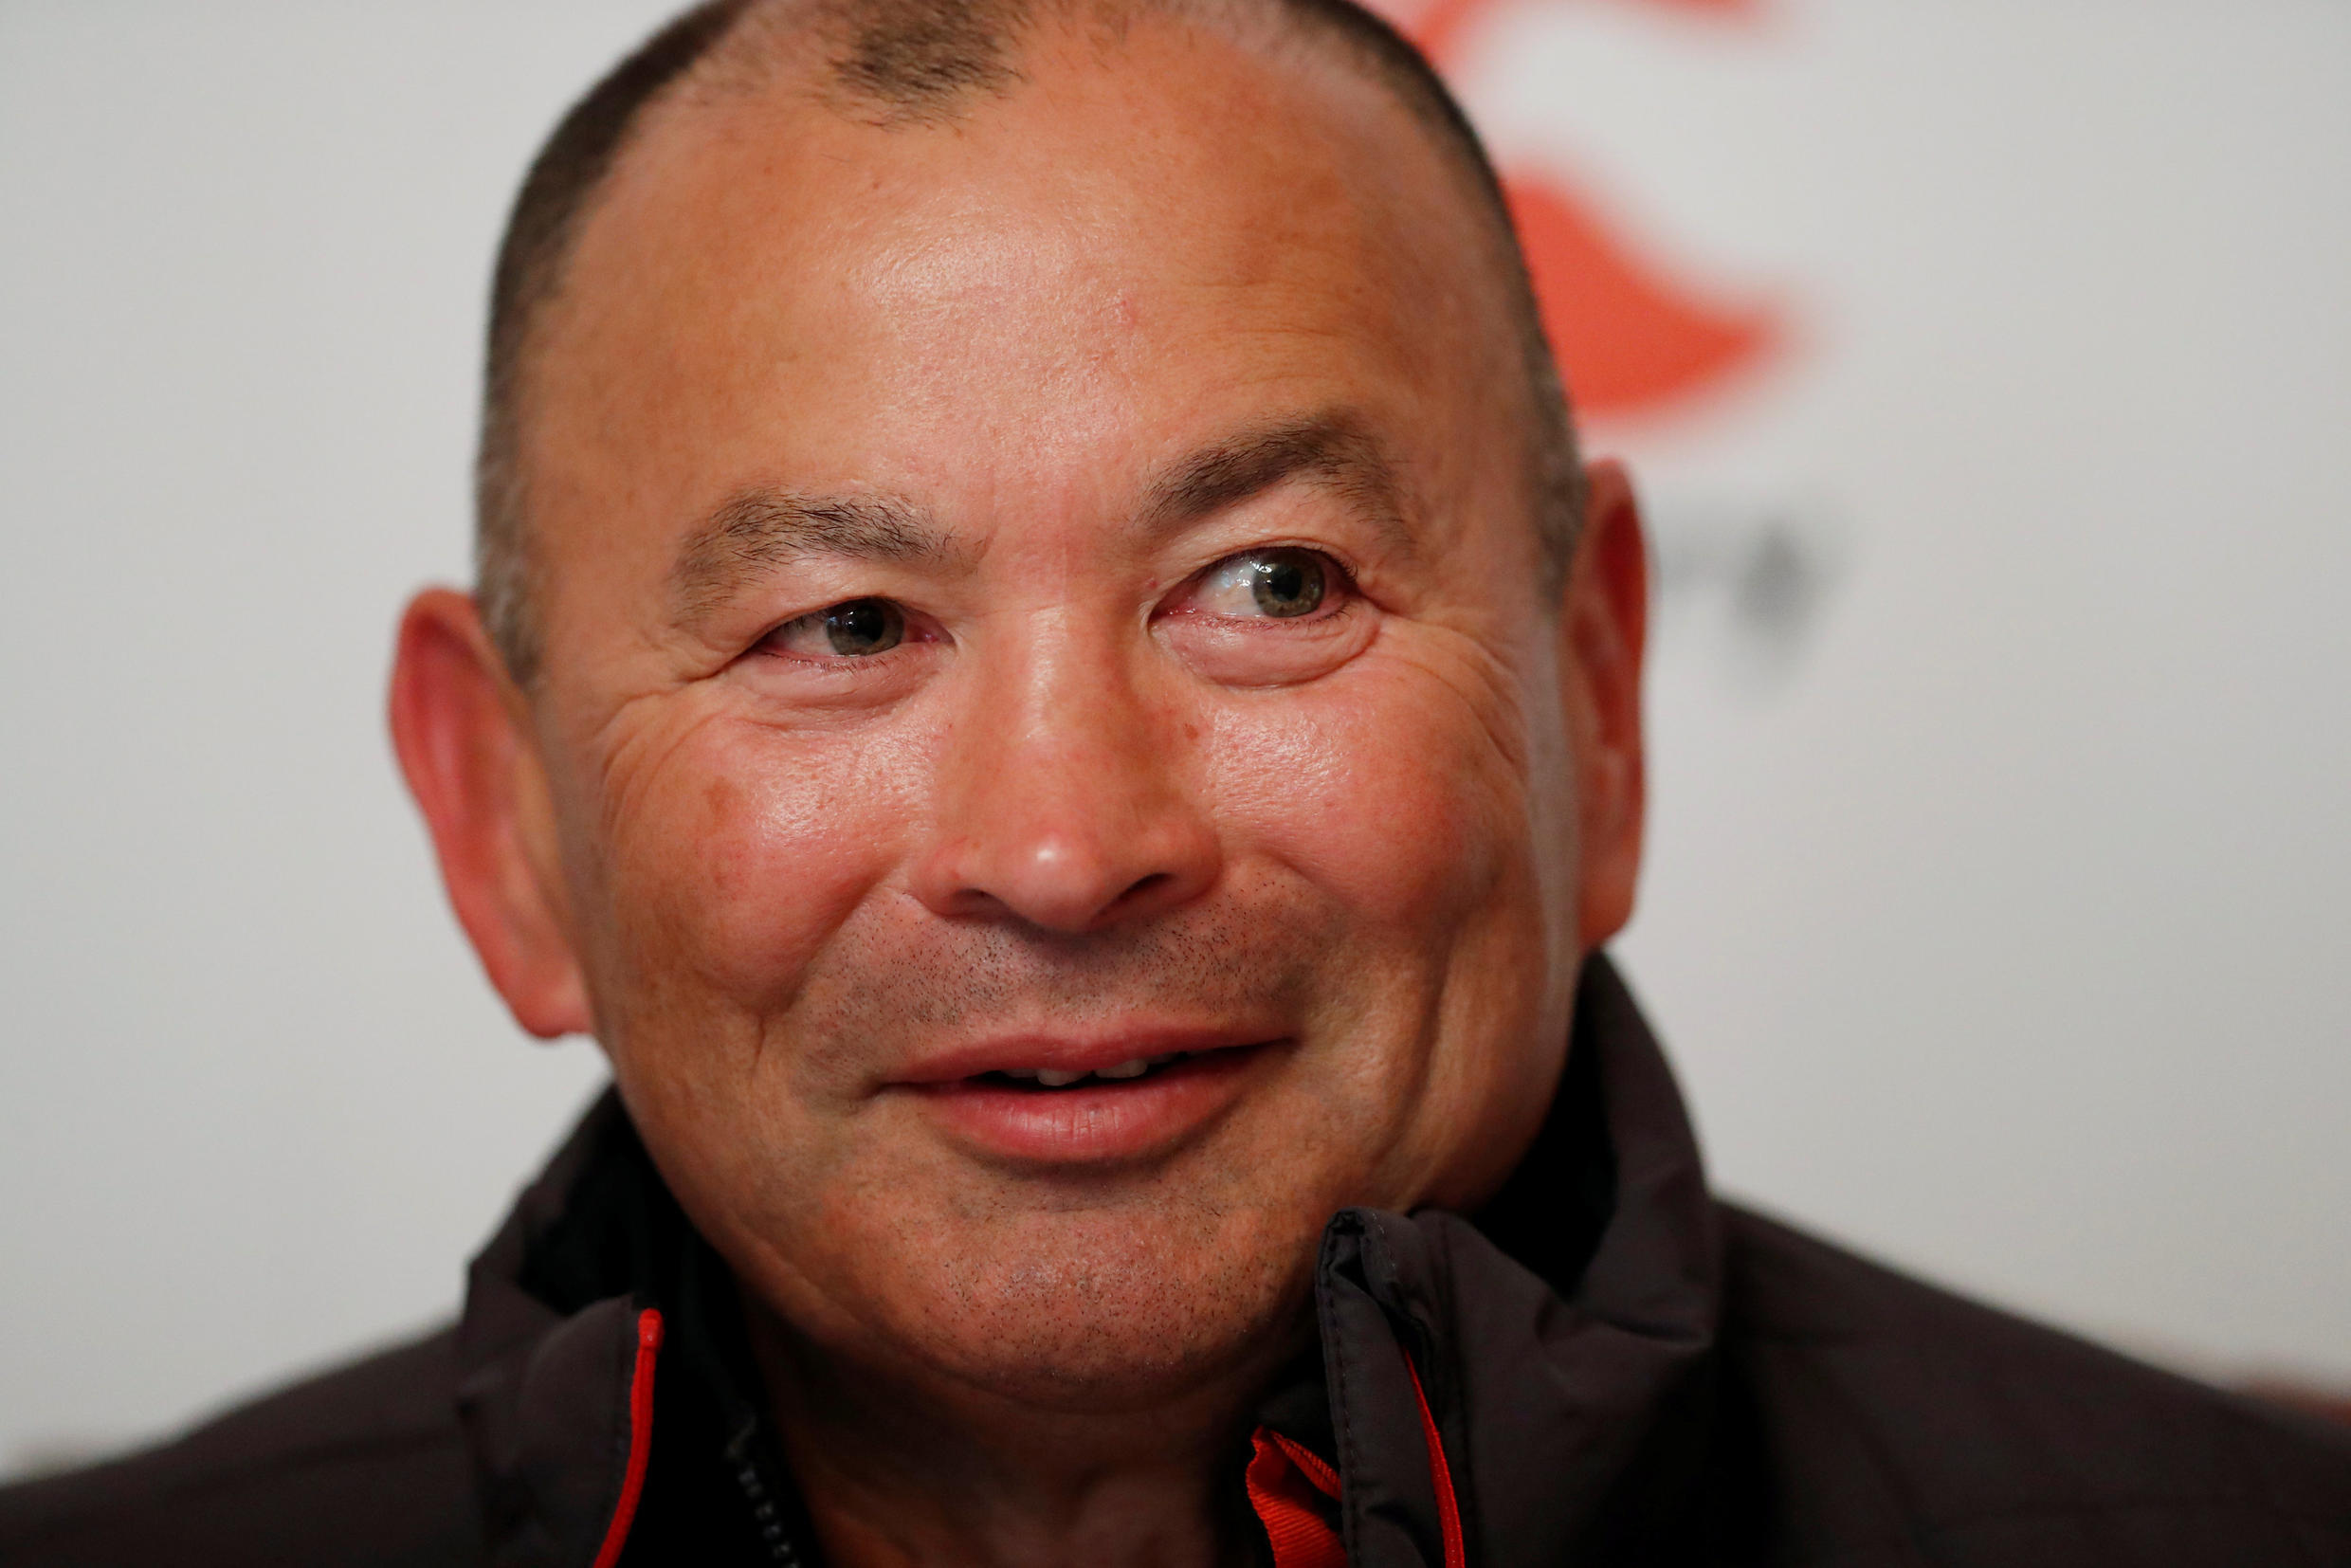 England head coach Eddie Jones has announced two changes to the team that started against Ireland.